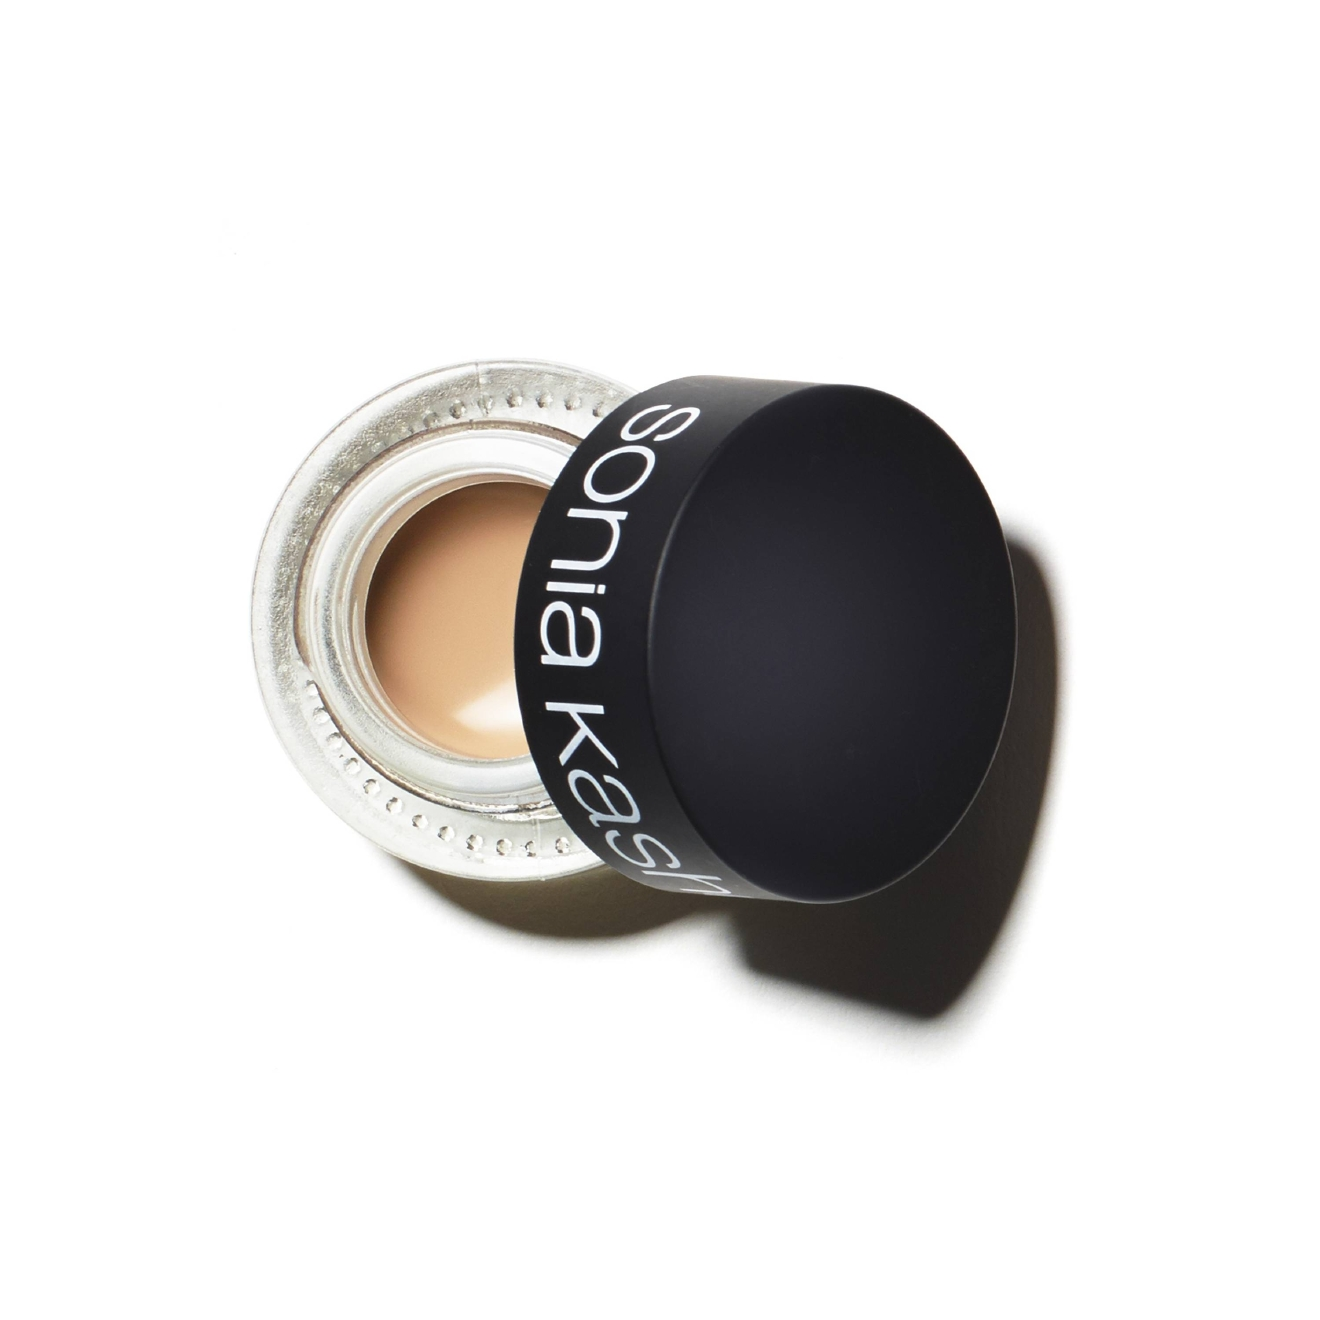 Another cure to sleepless nights, concealer should be in every girl's arsenal. Whether you favor cream, stick or liquid, the drugstore coverage options are endless. Conceal blemishes, dark circles and imperfections by dotting on this gem ($9.99).   (Image: Target)